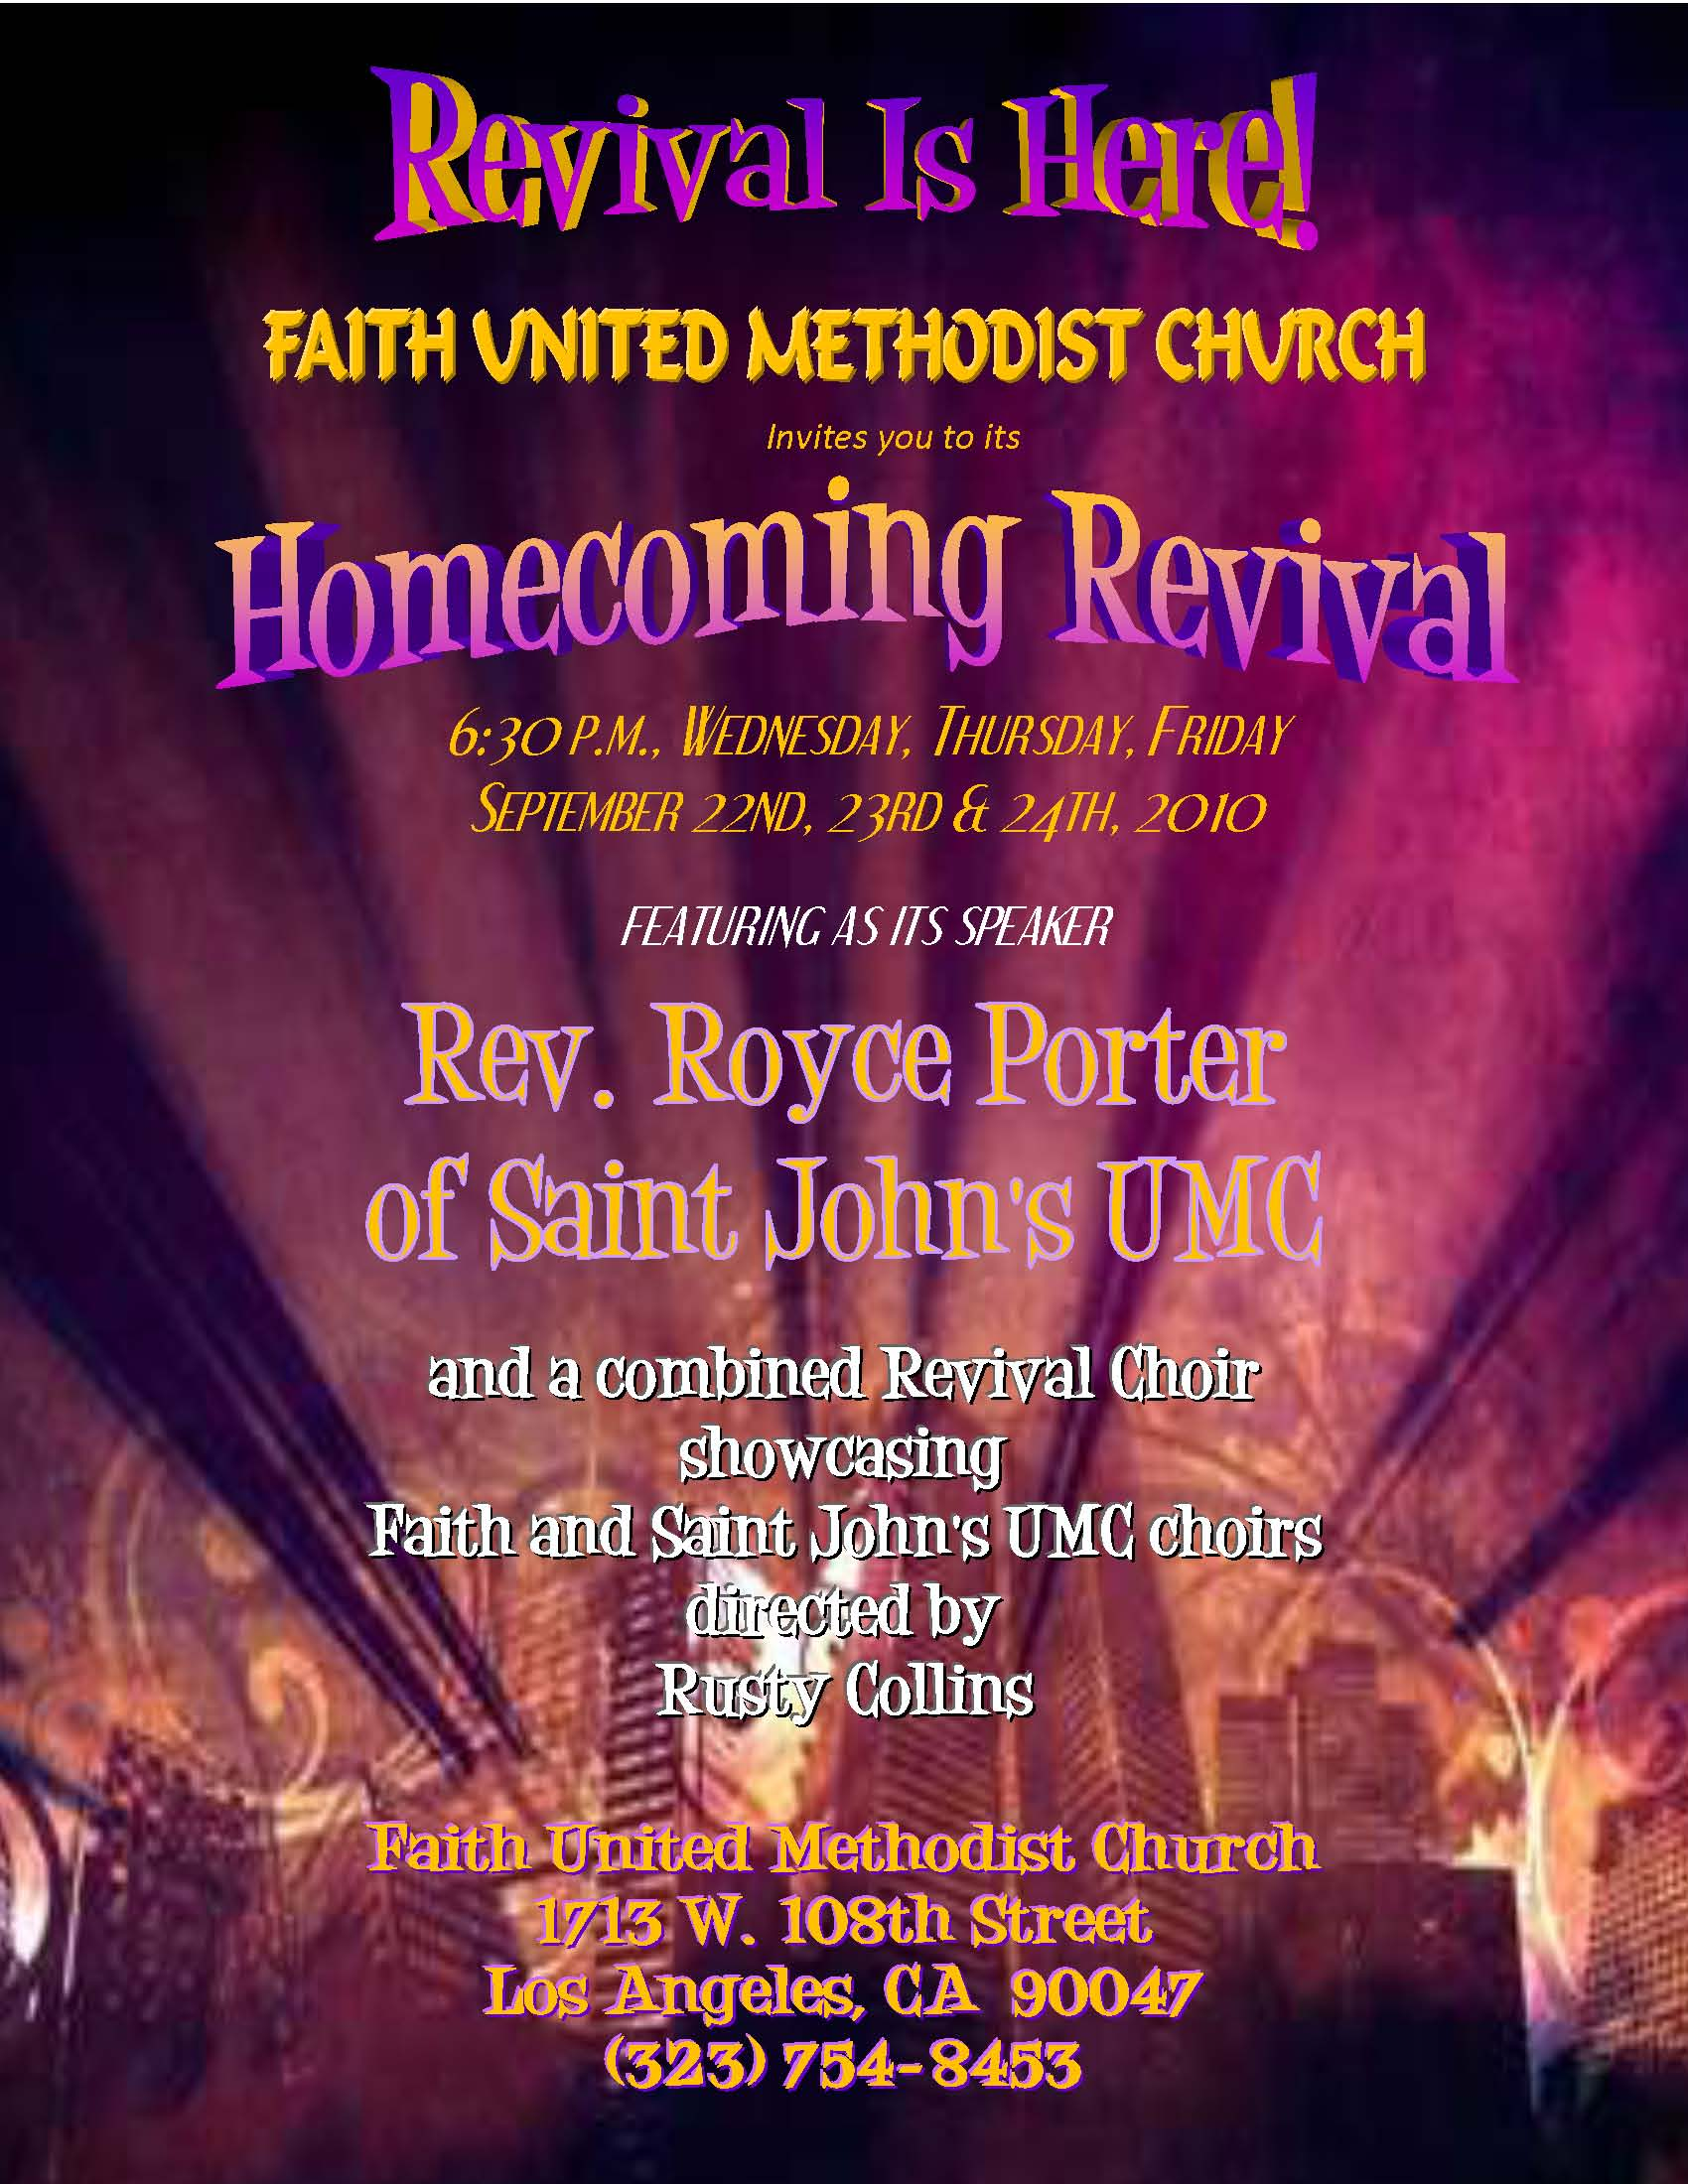 Revival2010flyer